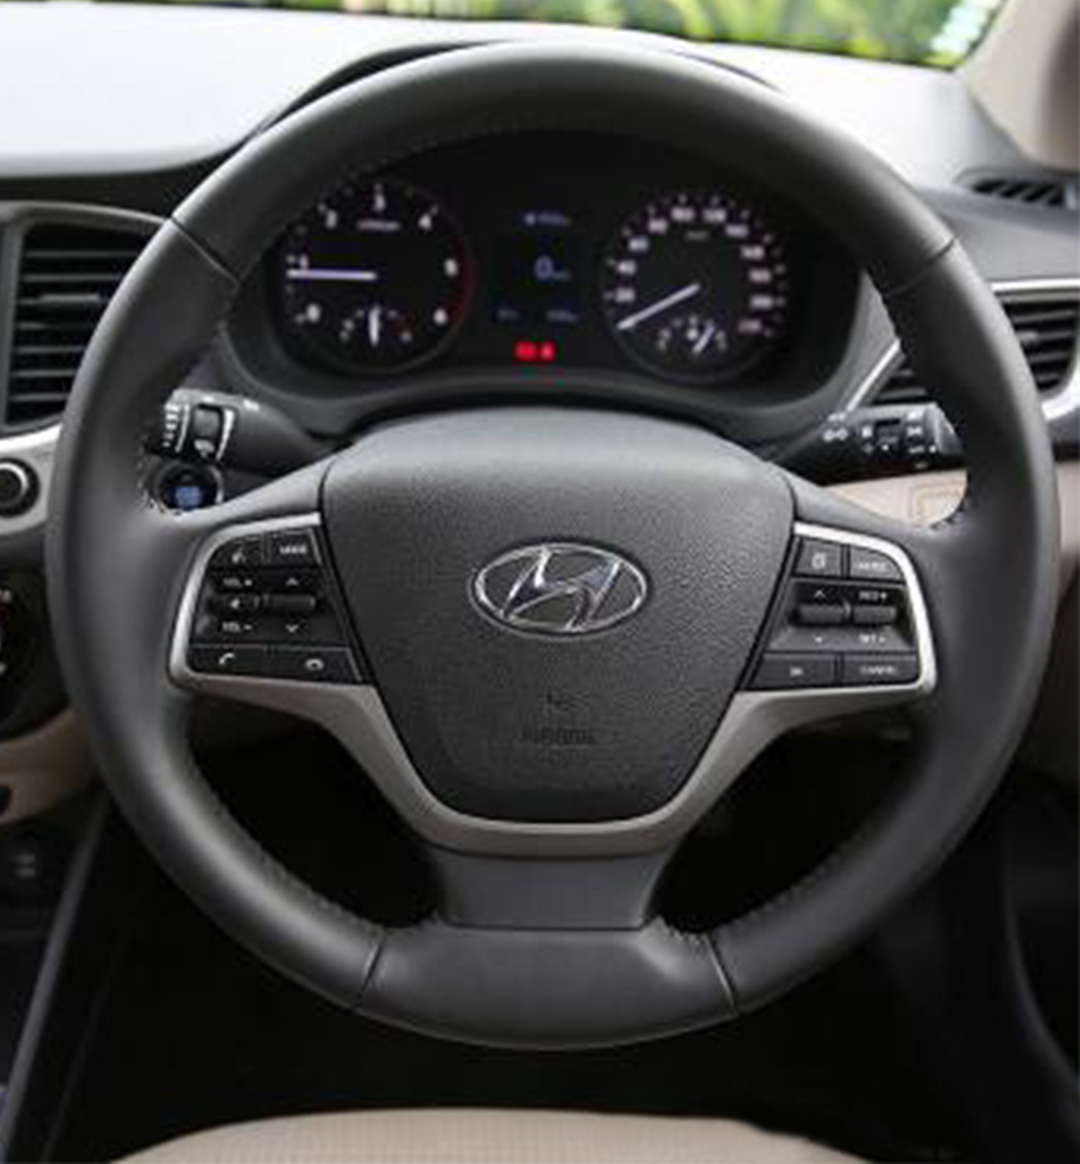 https://iciciauto.com/storage/upload/model_images/Hyundai Verna-Sedan-Steering.jpg